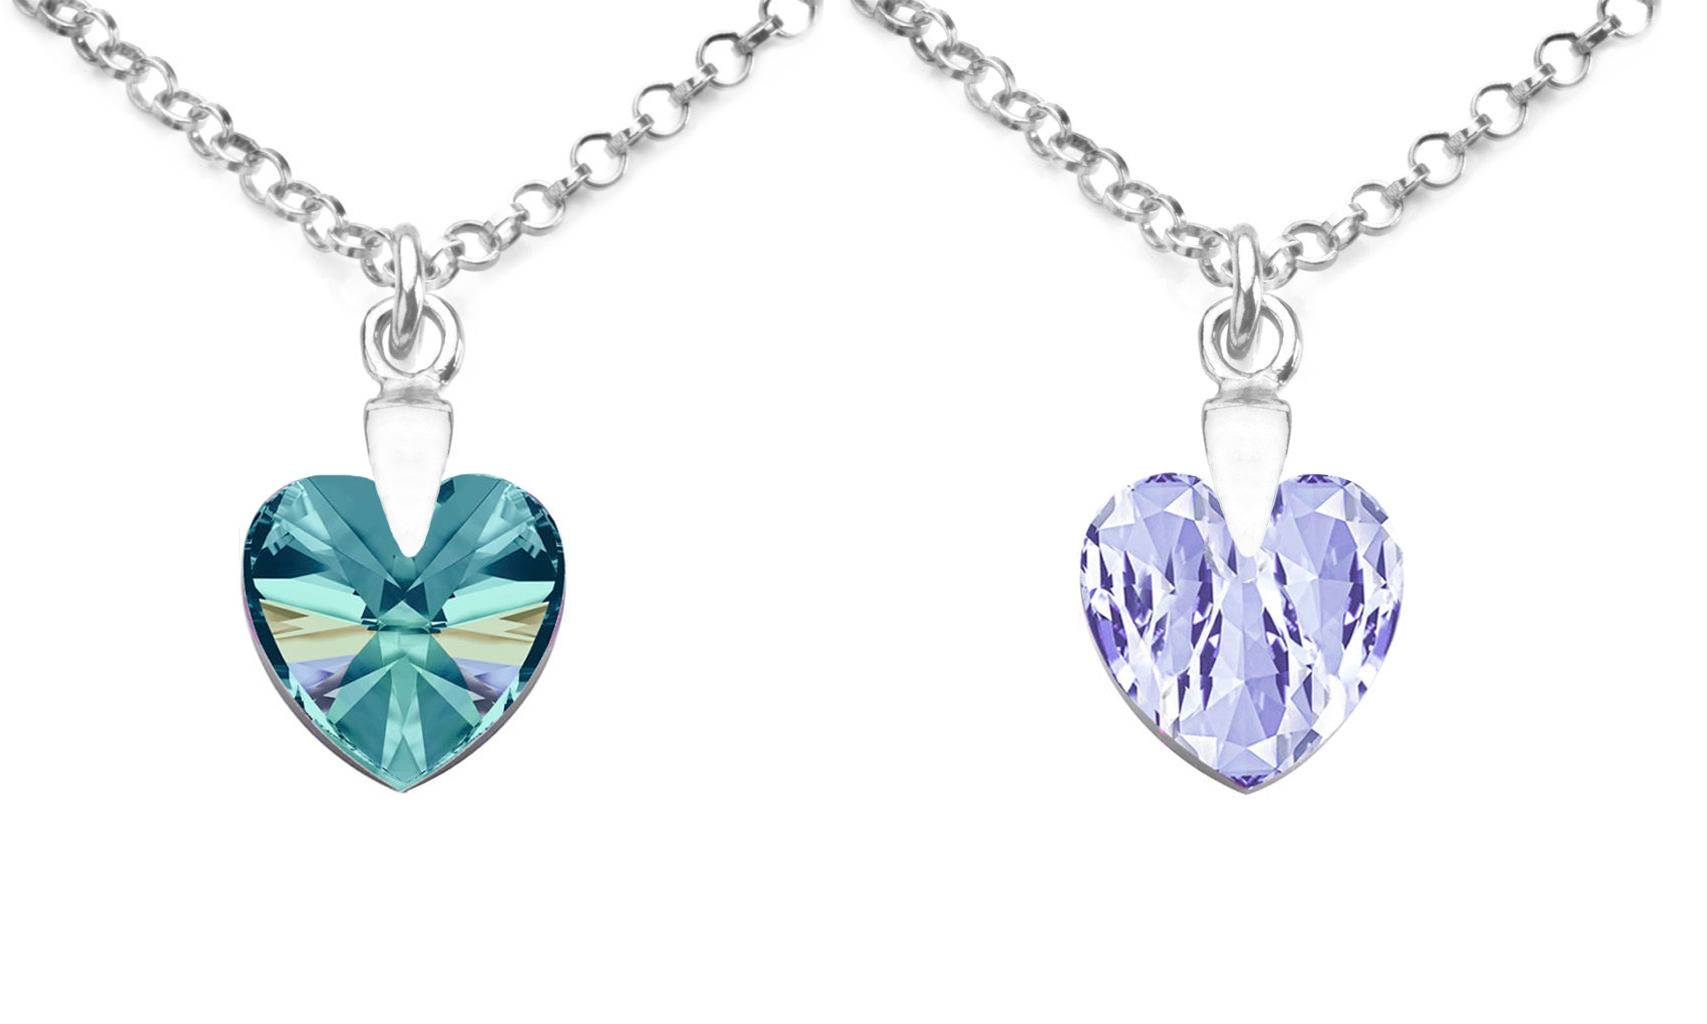 179.98 Ah! Jewellery Silver Heart Necklace with Crystals from Swarovski®: Blue Zircon AB and Lavender/Two